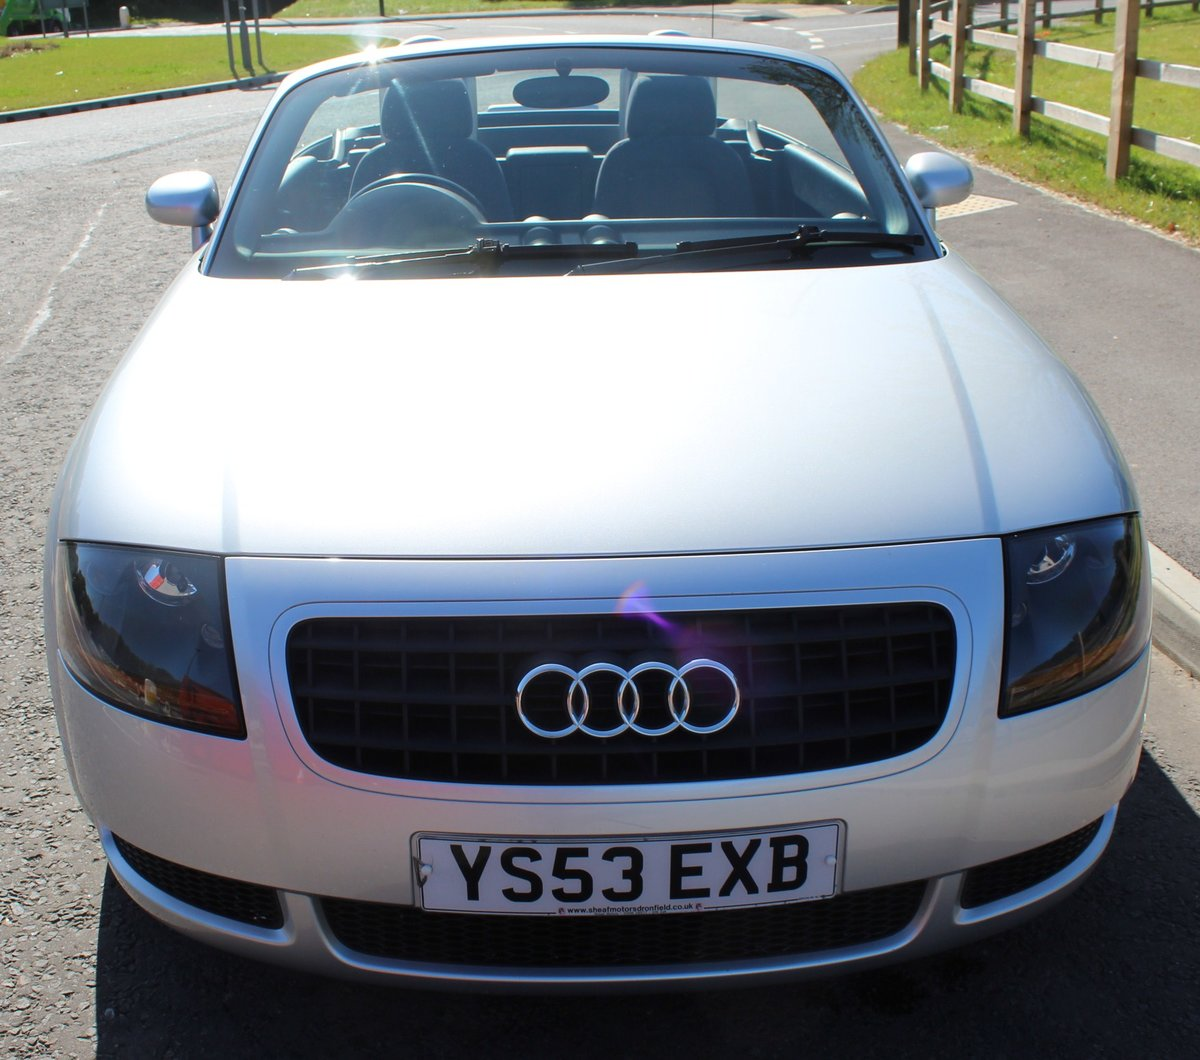 2003 Audi TT Roadster 150 BHP Turbo , 79,000 miles With FSH SOLD (picture 2 of 6)